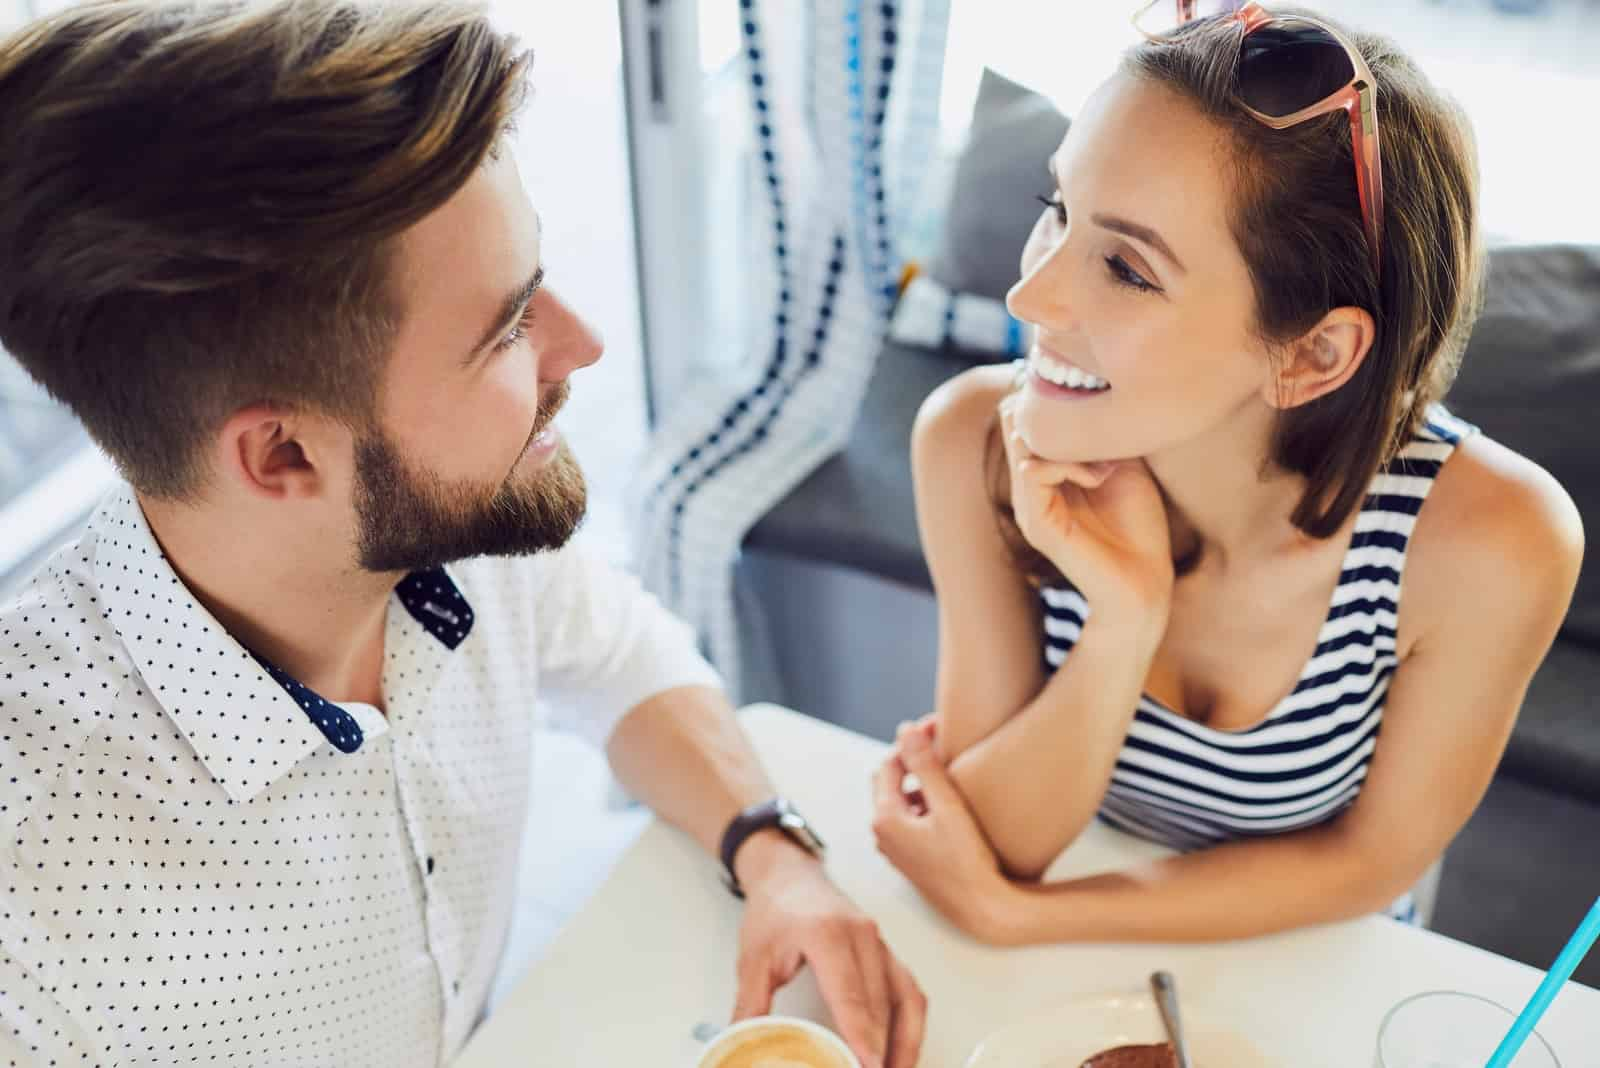 man and woman smiling while sitting at table